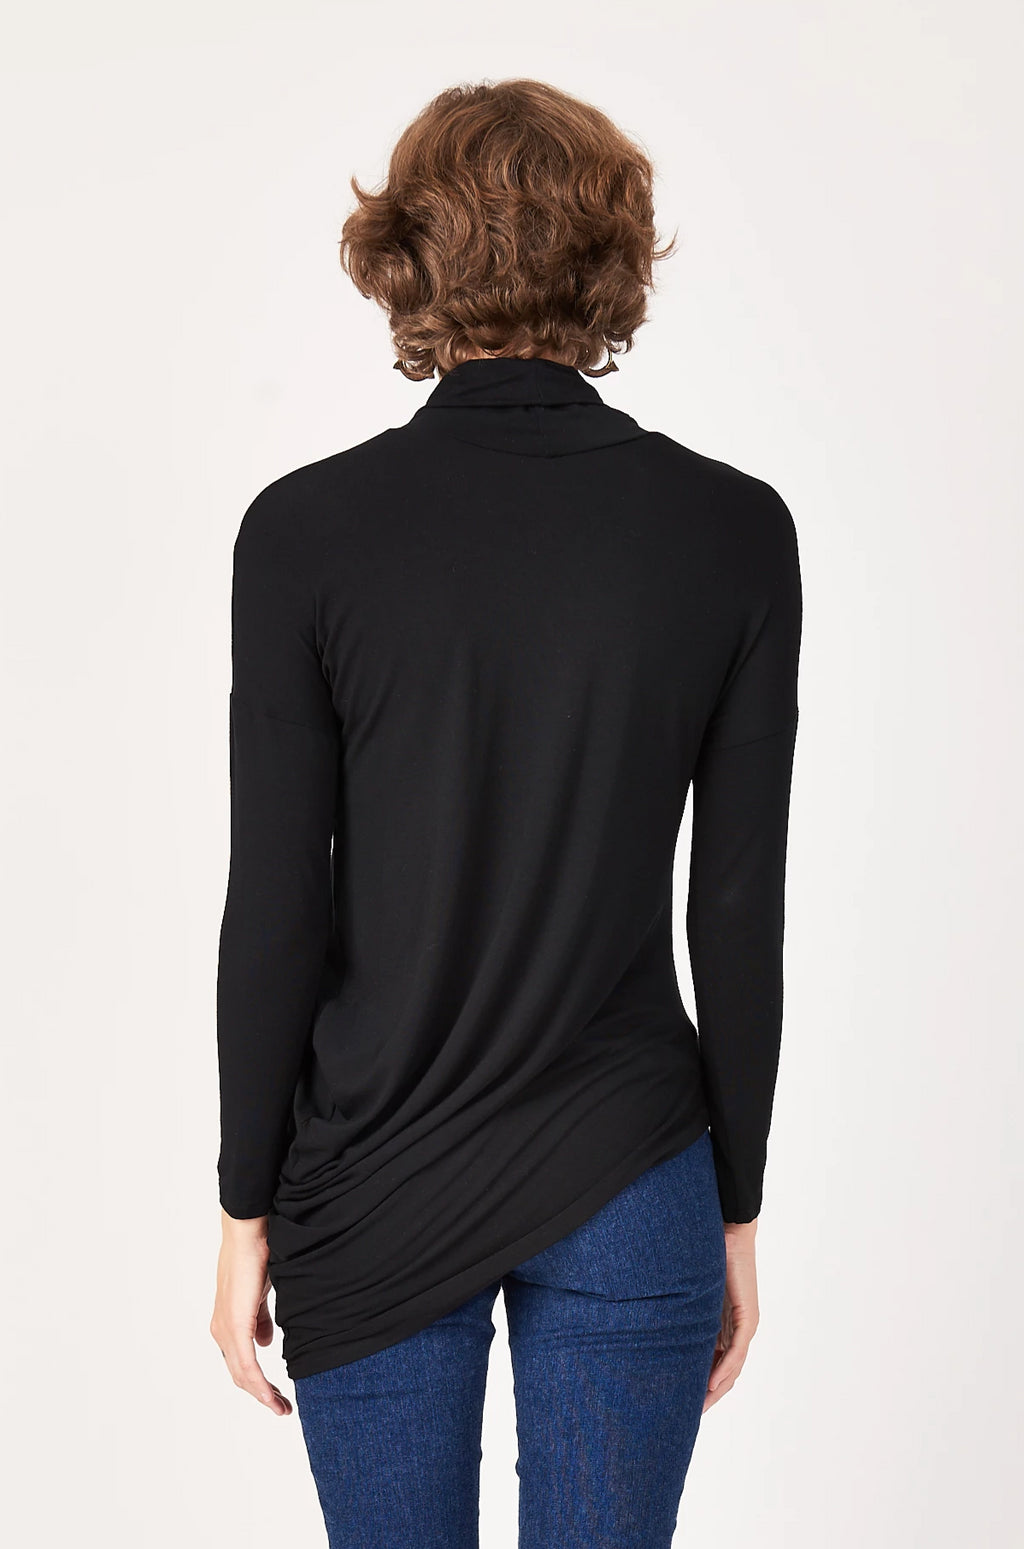 Turtleneck L/S Curve Top in Black Bamboo